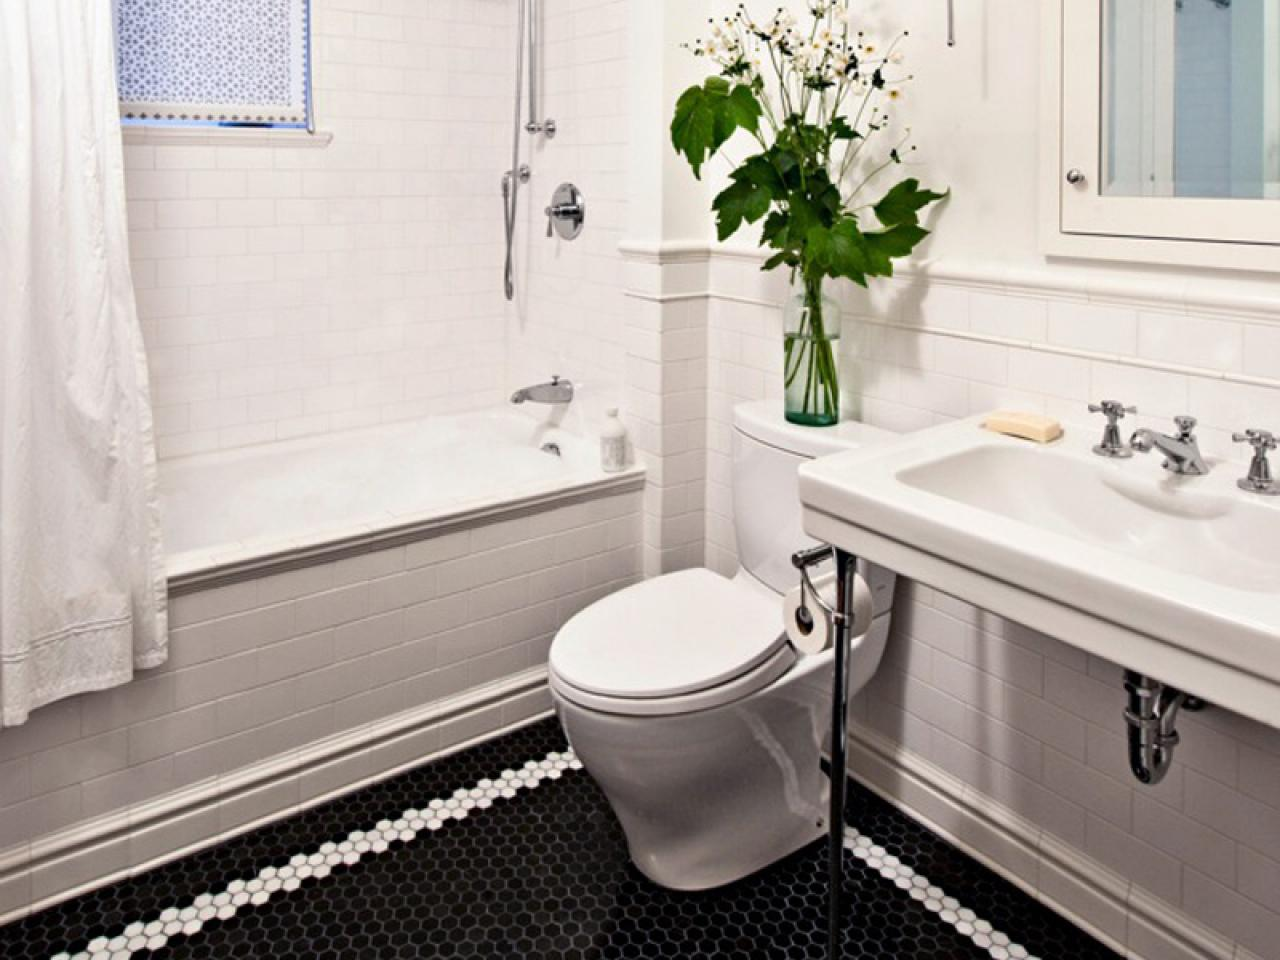 Not Using Tiles Bathroom Ideas: 23 Nice Ideas And Pictures Of Basketweave Bathroom Tile